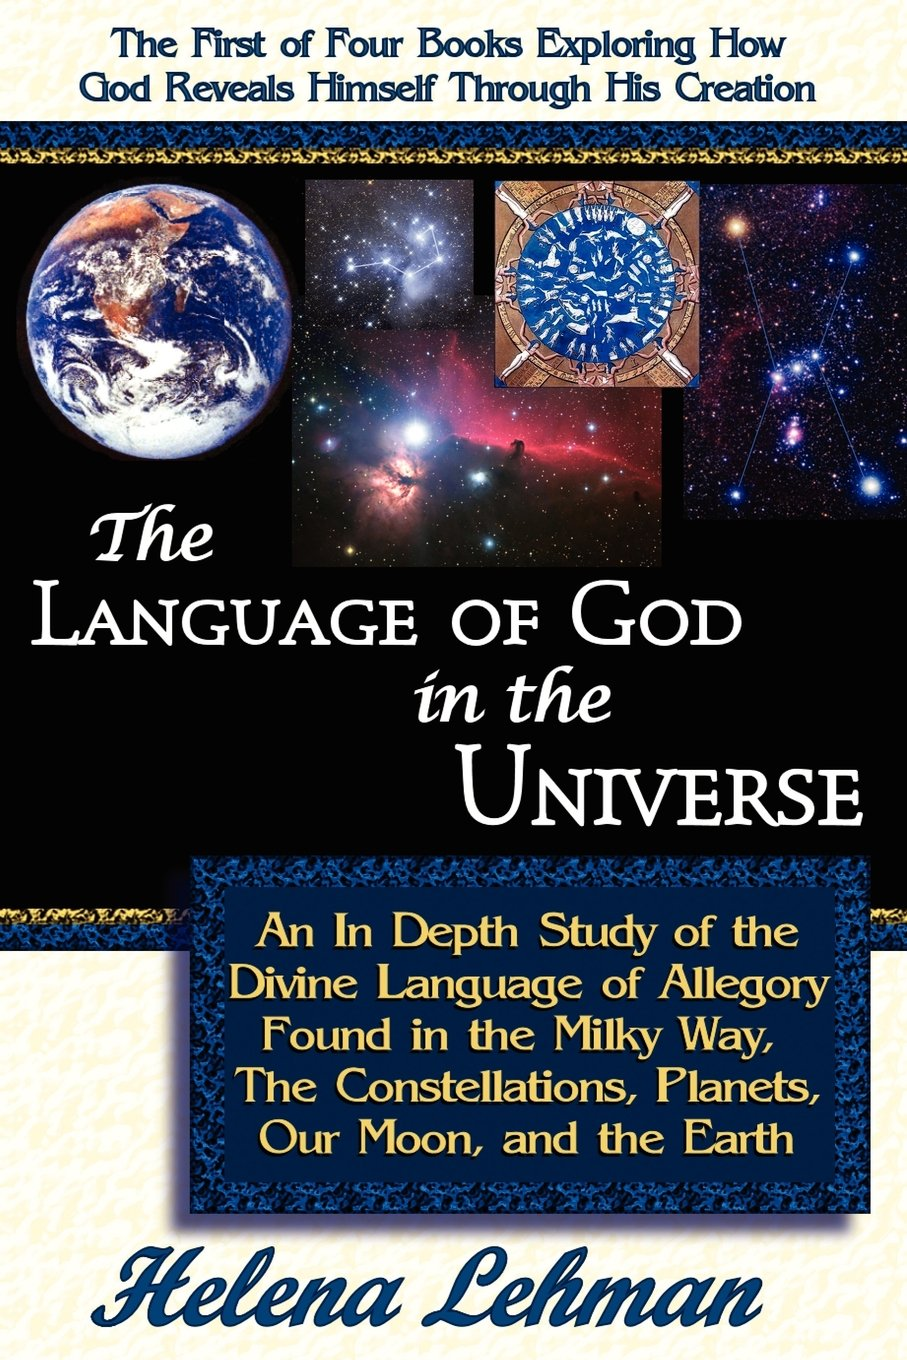 Read Online The Language of God in the Universe: An In Depth Study of the Divine Language of Allegory Found in the Milky Way, The Constellations, Planets, Our Moon, and the Earth (The Language of God Series) ebook